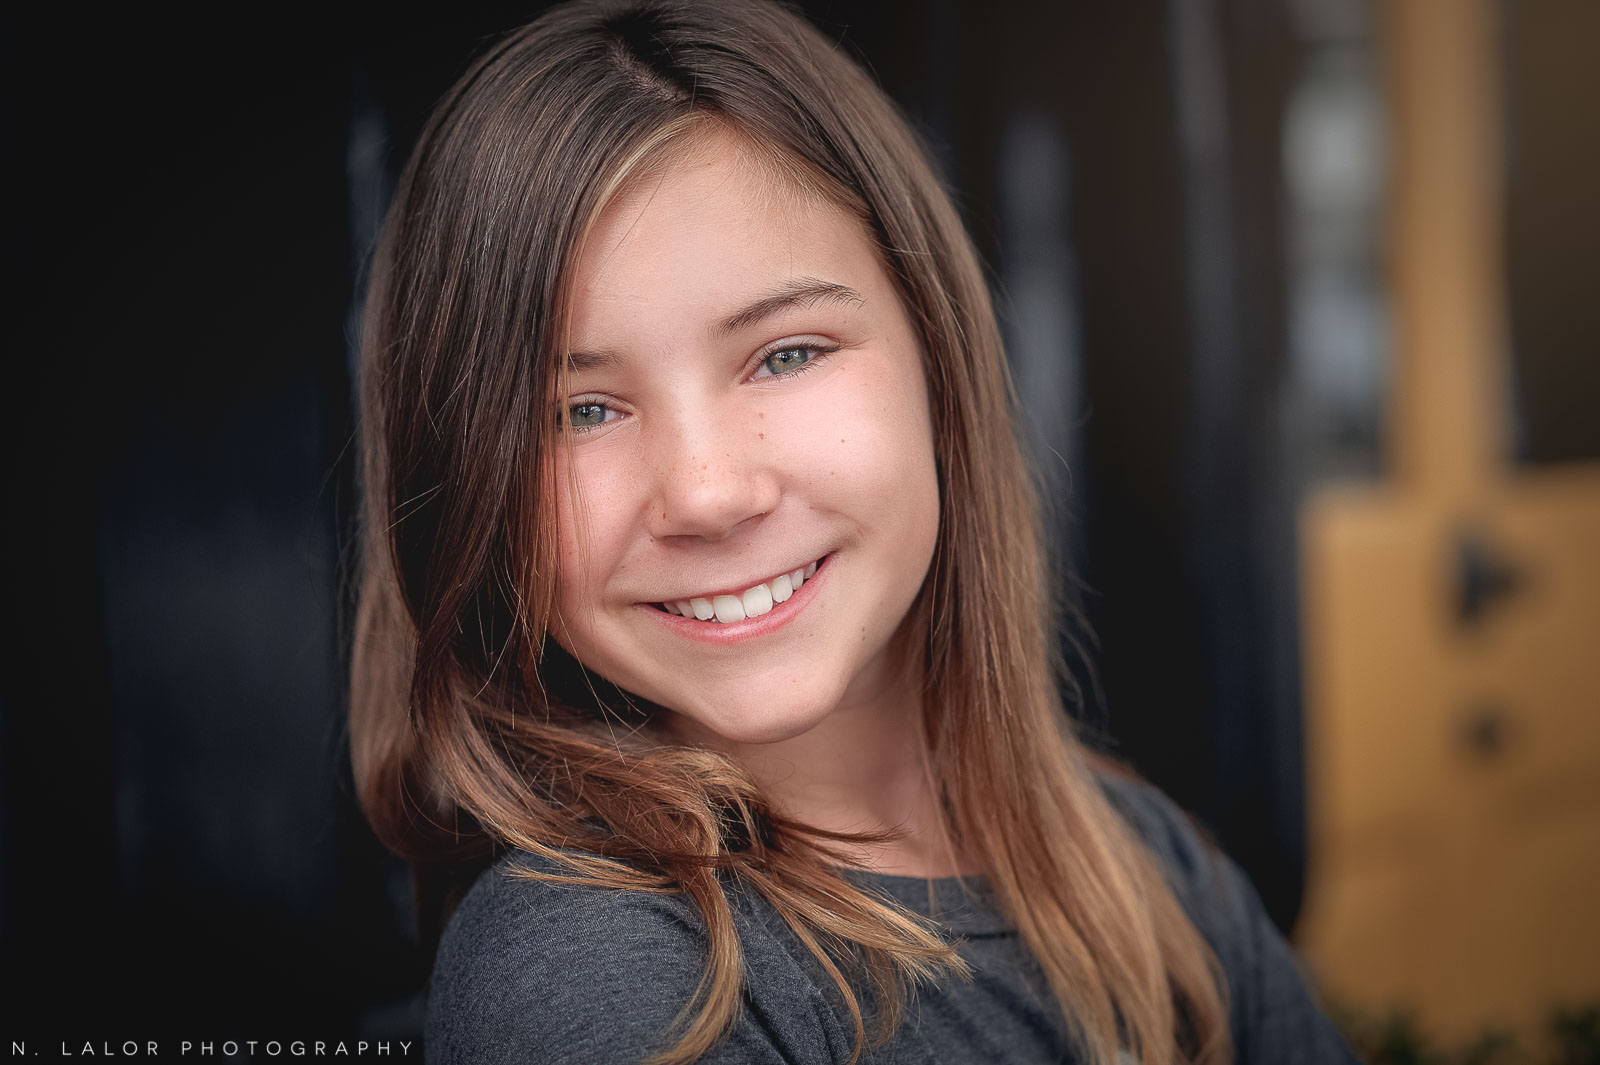 nlalor-photography-090314-fun-styled-tween-session-greenwich-avenue-connecticut-2.jpg